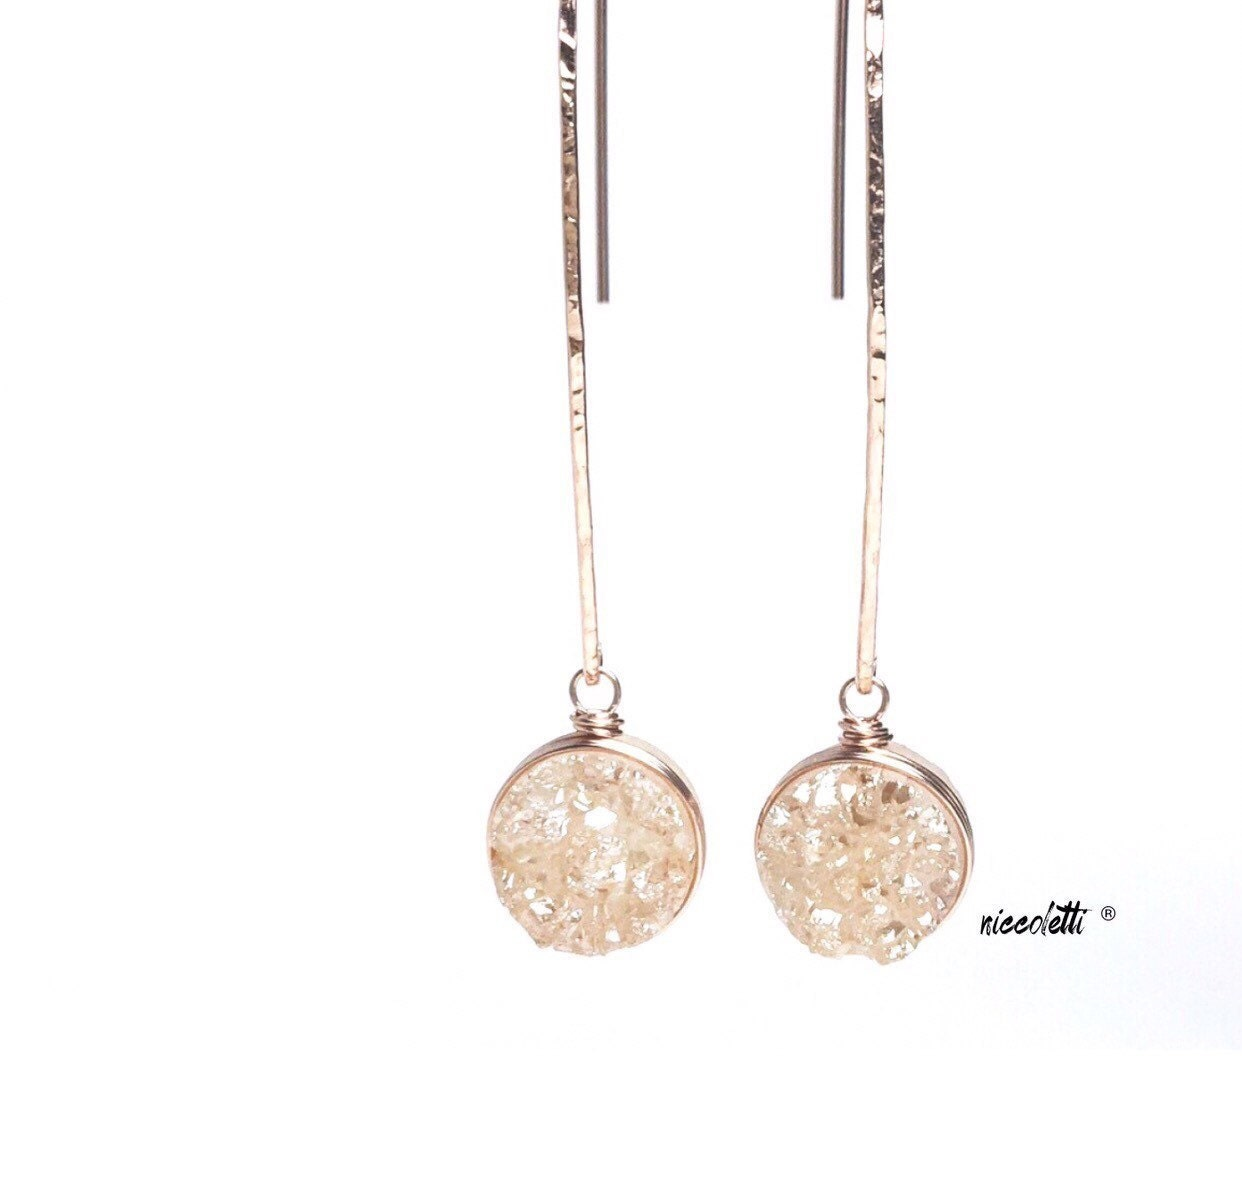 Long Druzy Dangle Earrings / Bridal Jewelry / Rose Gold Earrings / Modern Bride / Blush Champagne Druzy Dangle Earrings / Bridesmaid Gift